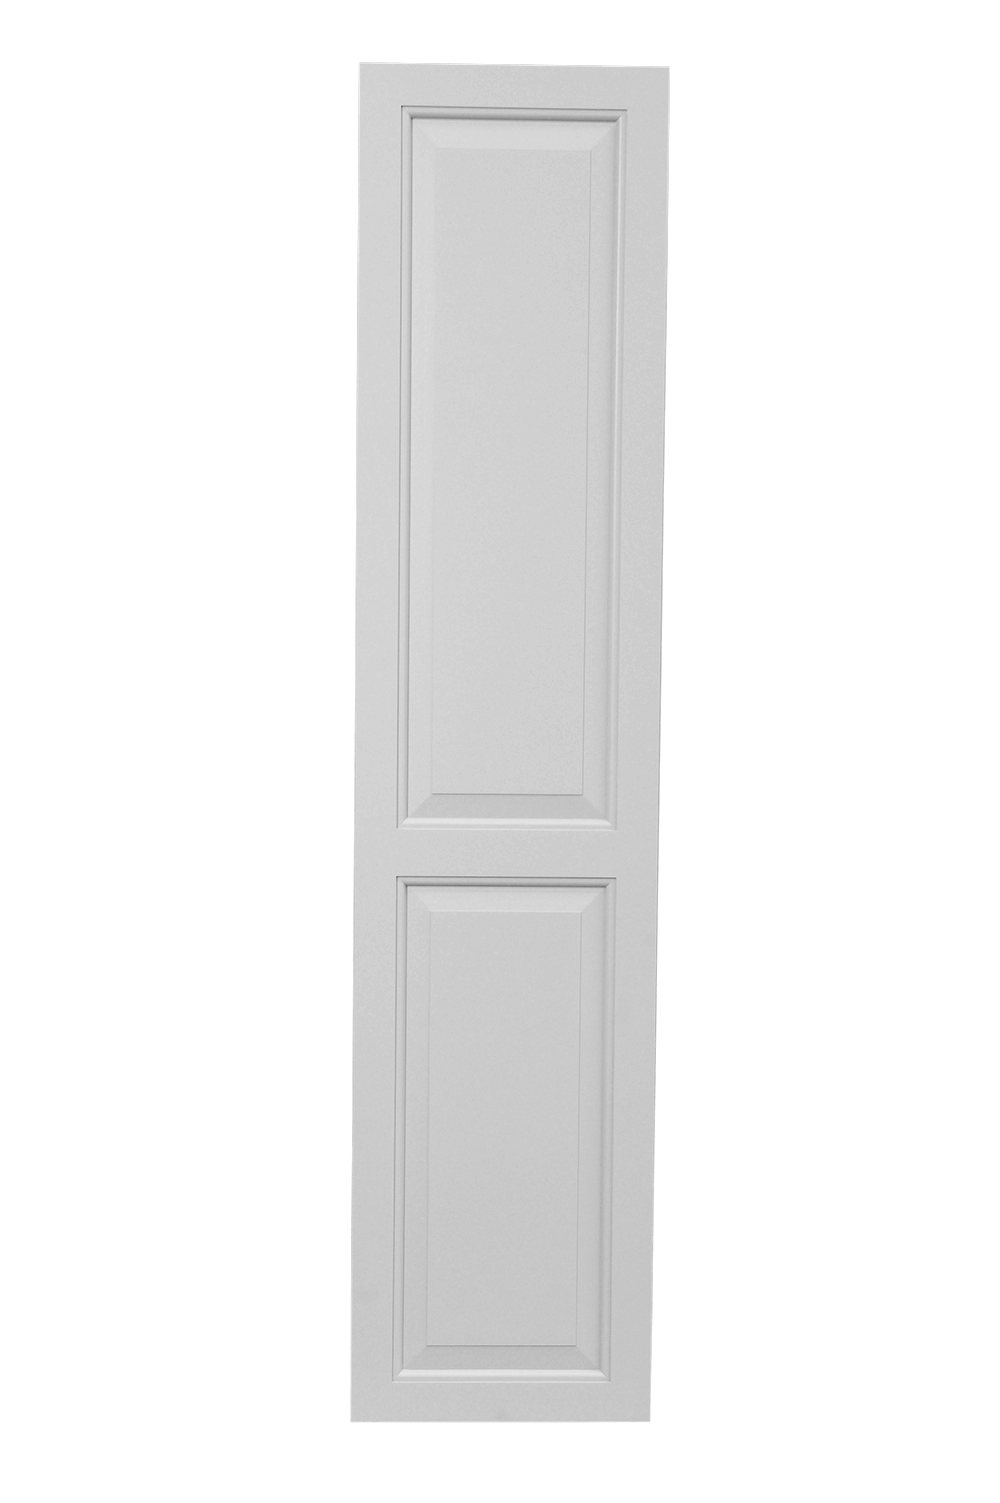 Georgian wardrobe door